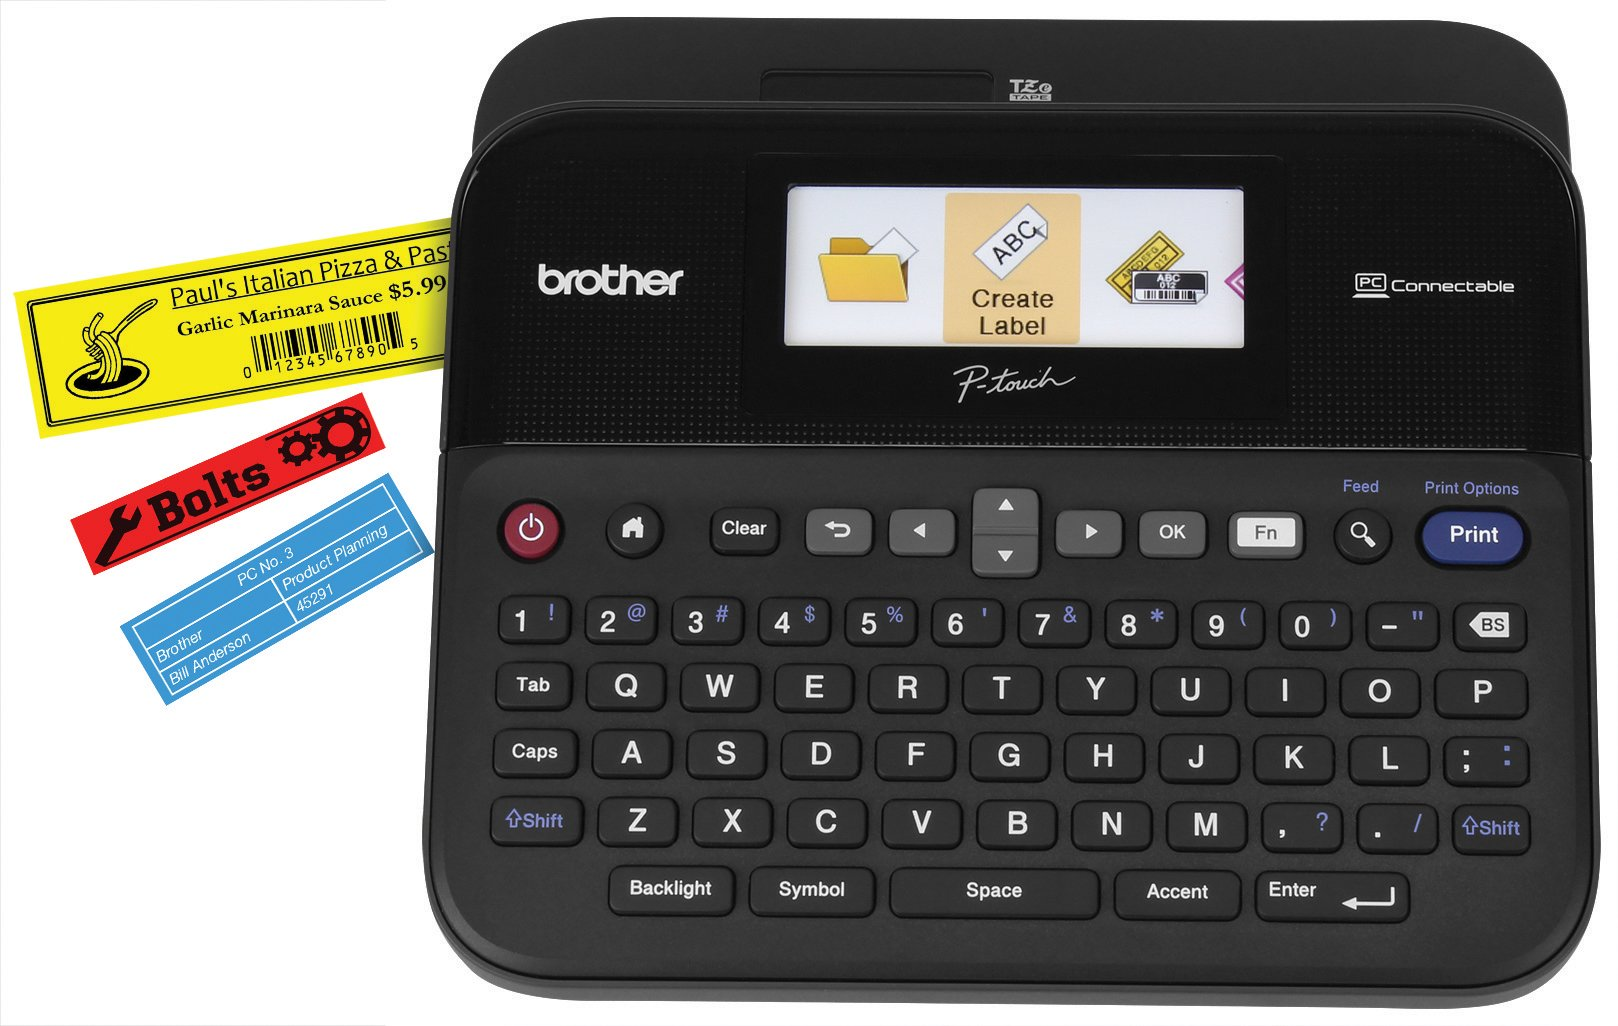 Brother P-touch Label Maker, PC-Connectable Labeler, PTD600, Color Display, High-Resolution PC Printing, Black